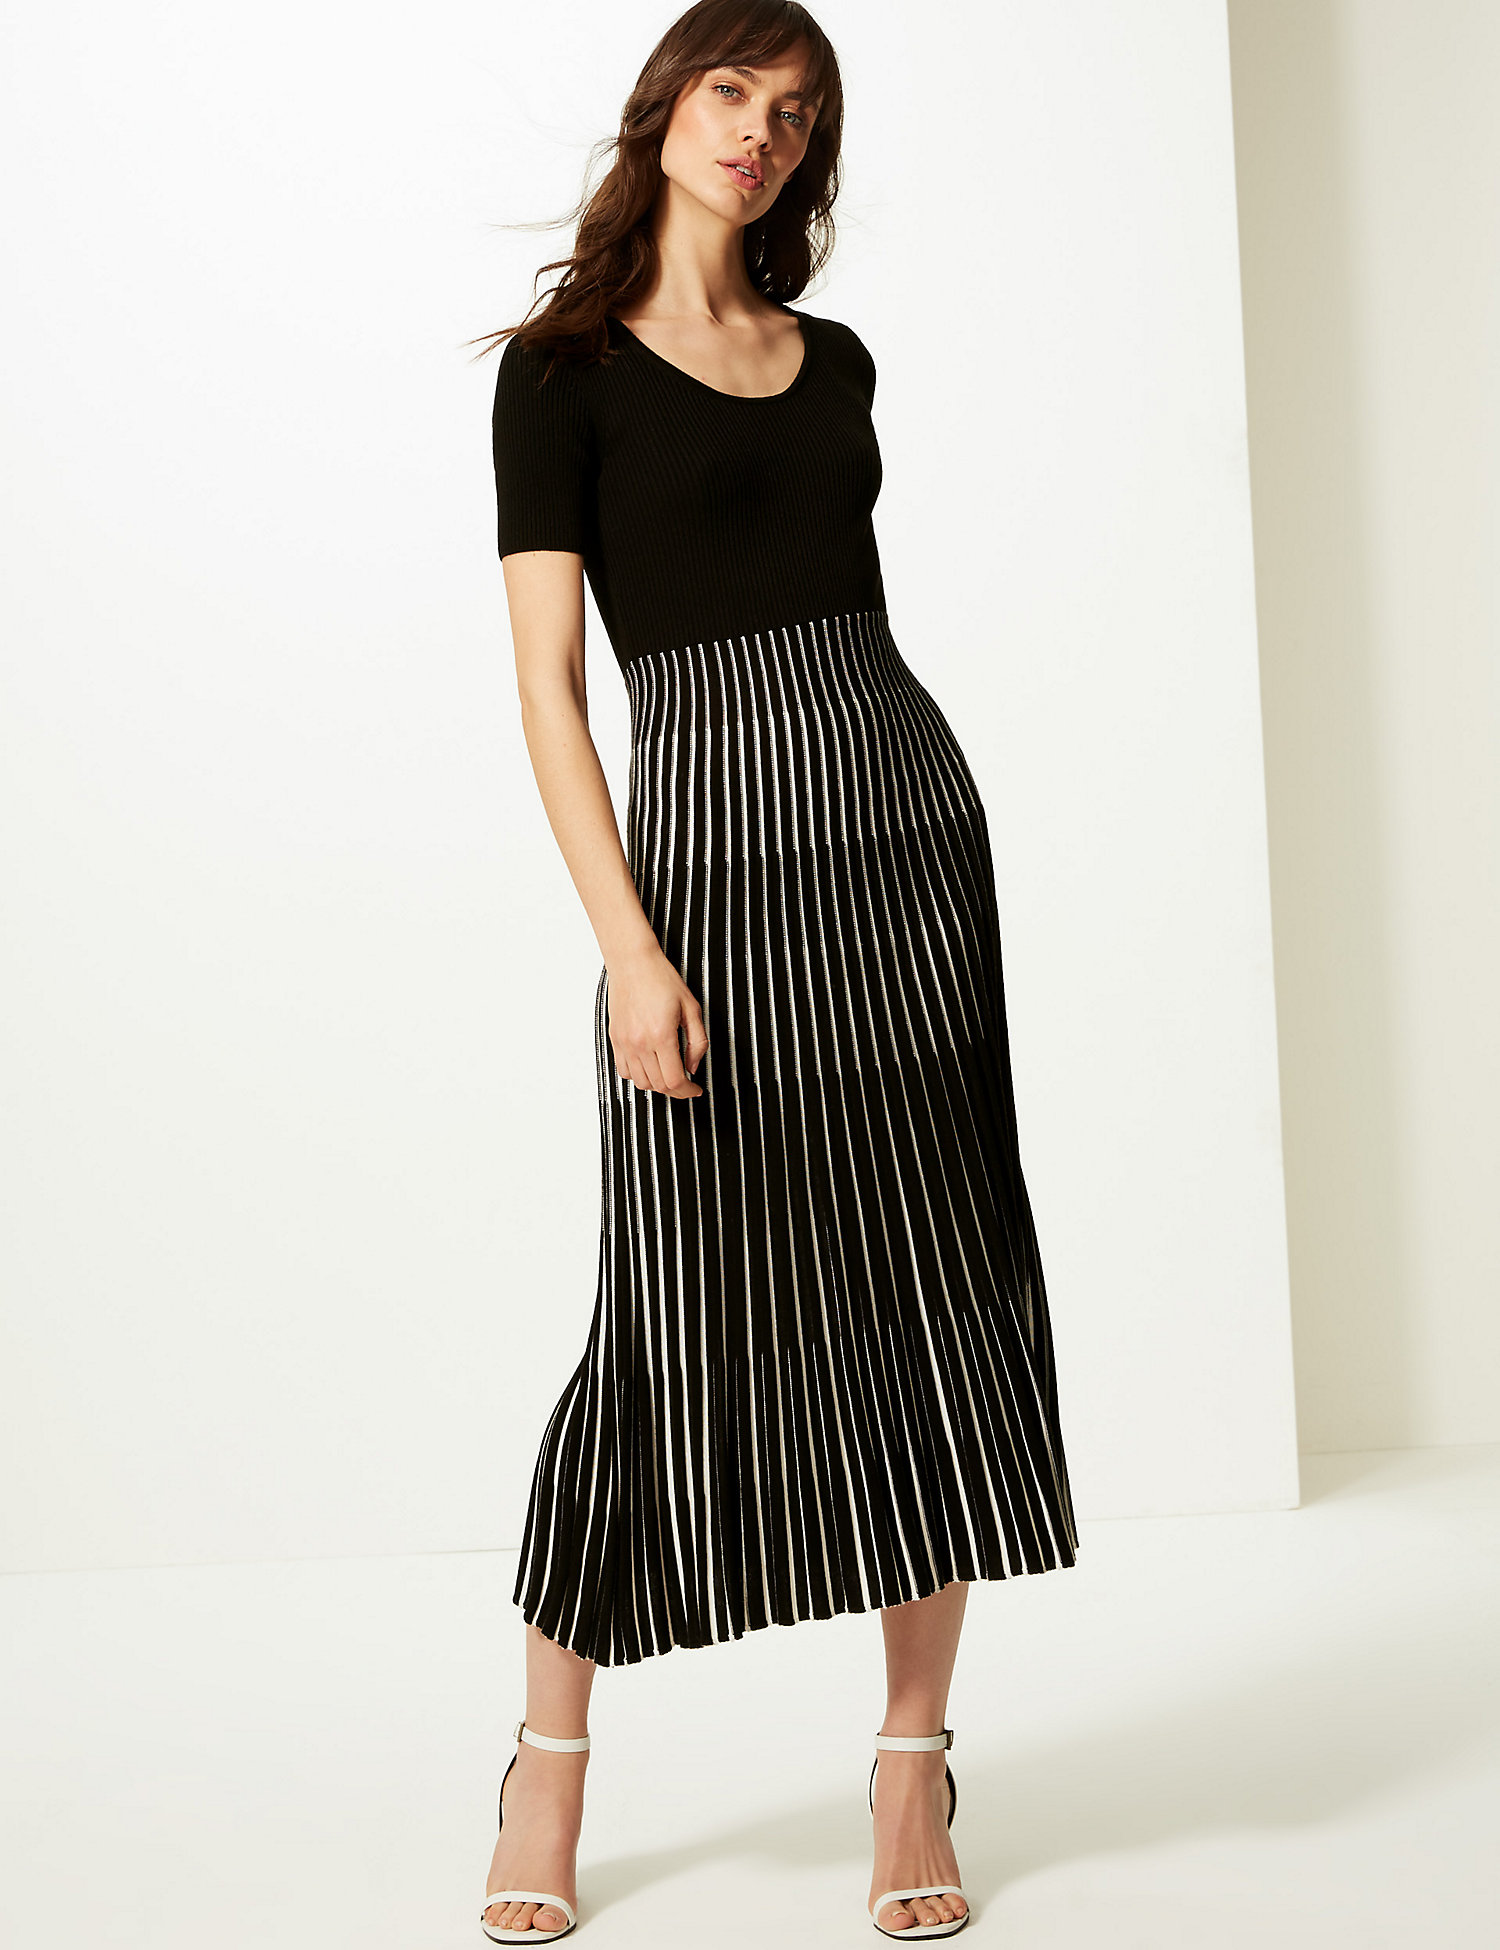 m&s ribbed knit dress